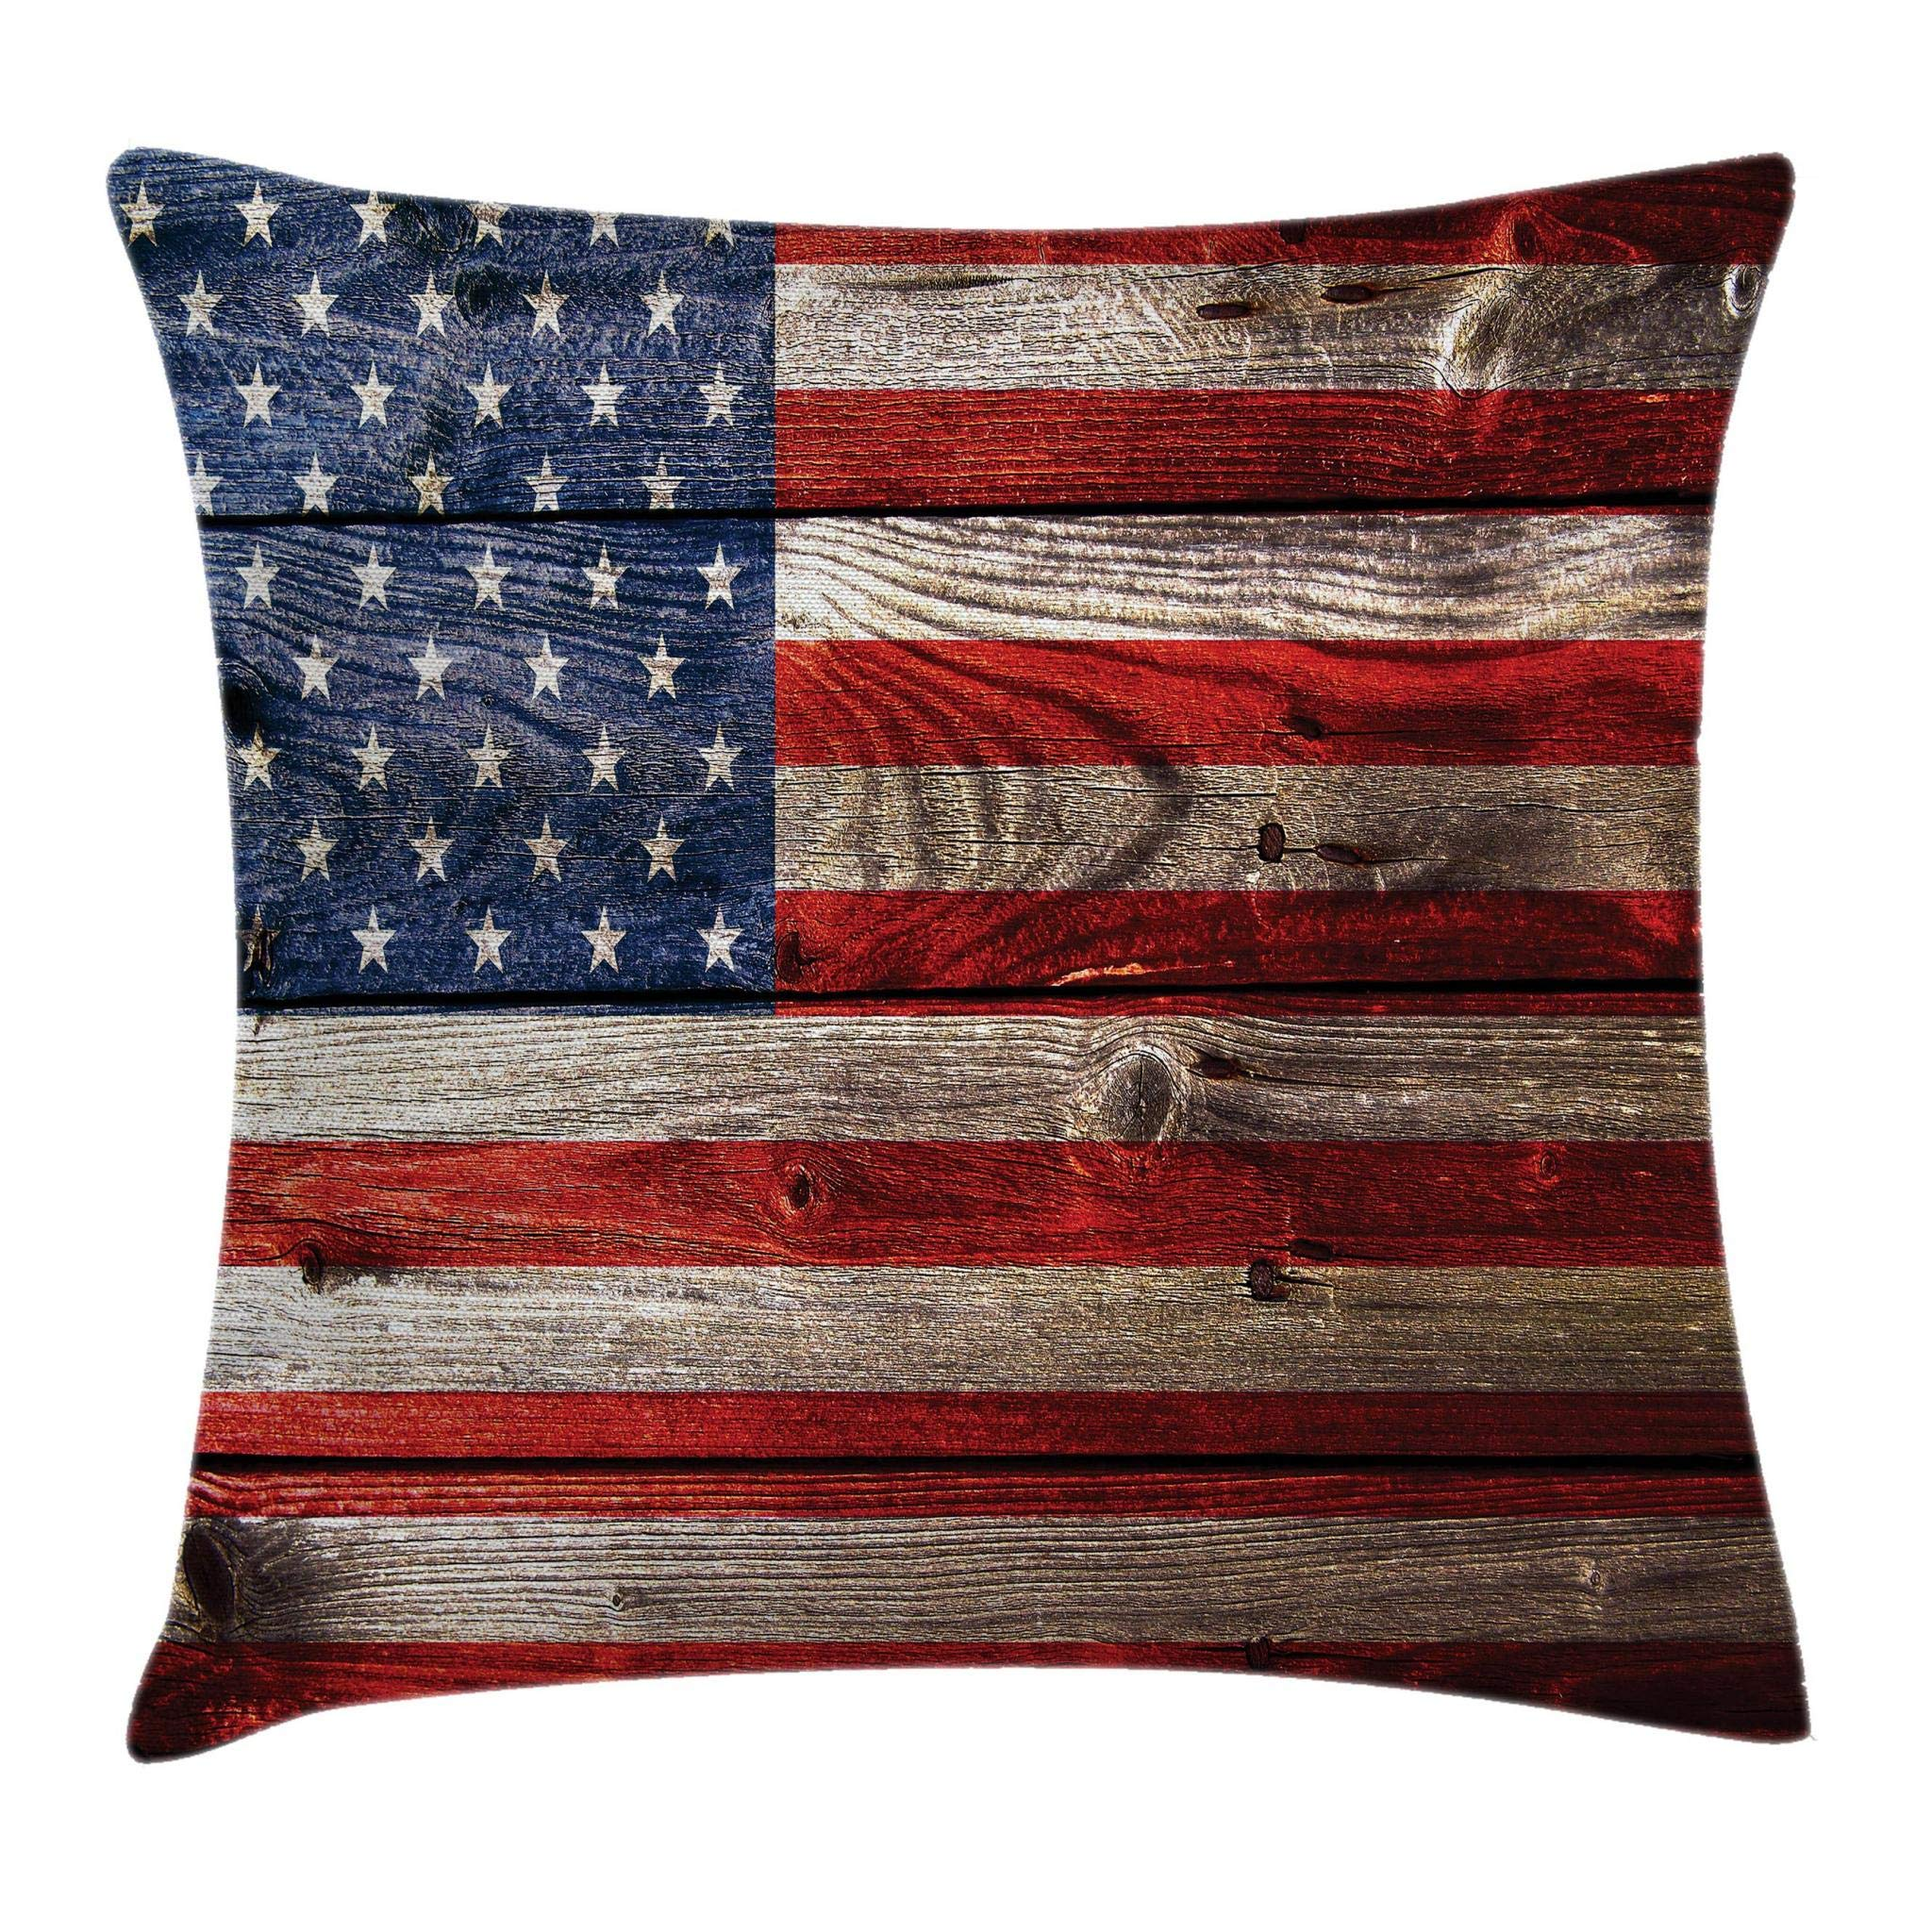 Ambesonne USA Throw Pillow Cushion Cover, Fourth of July Independence Day Weathered Retro Wood Wall Looking Country Emblem, Decorative Square Accent Pillow Case, 18'' X 18'', Red Blue Tan